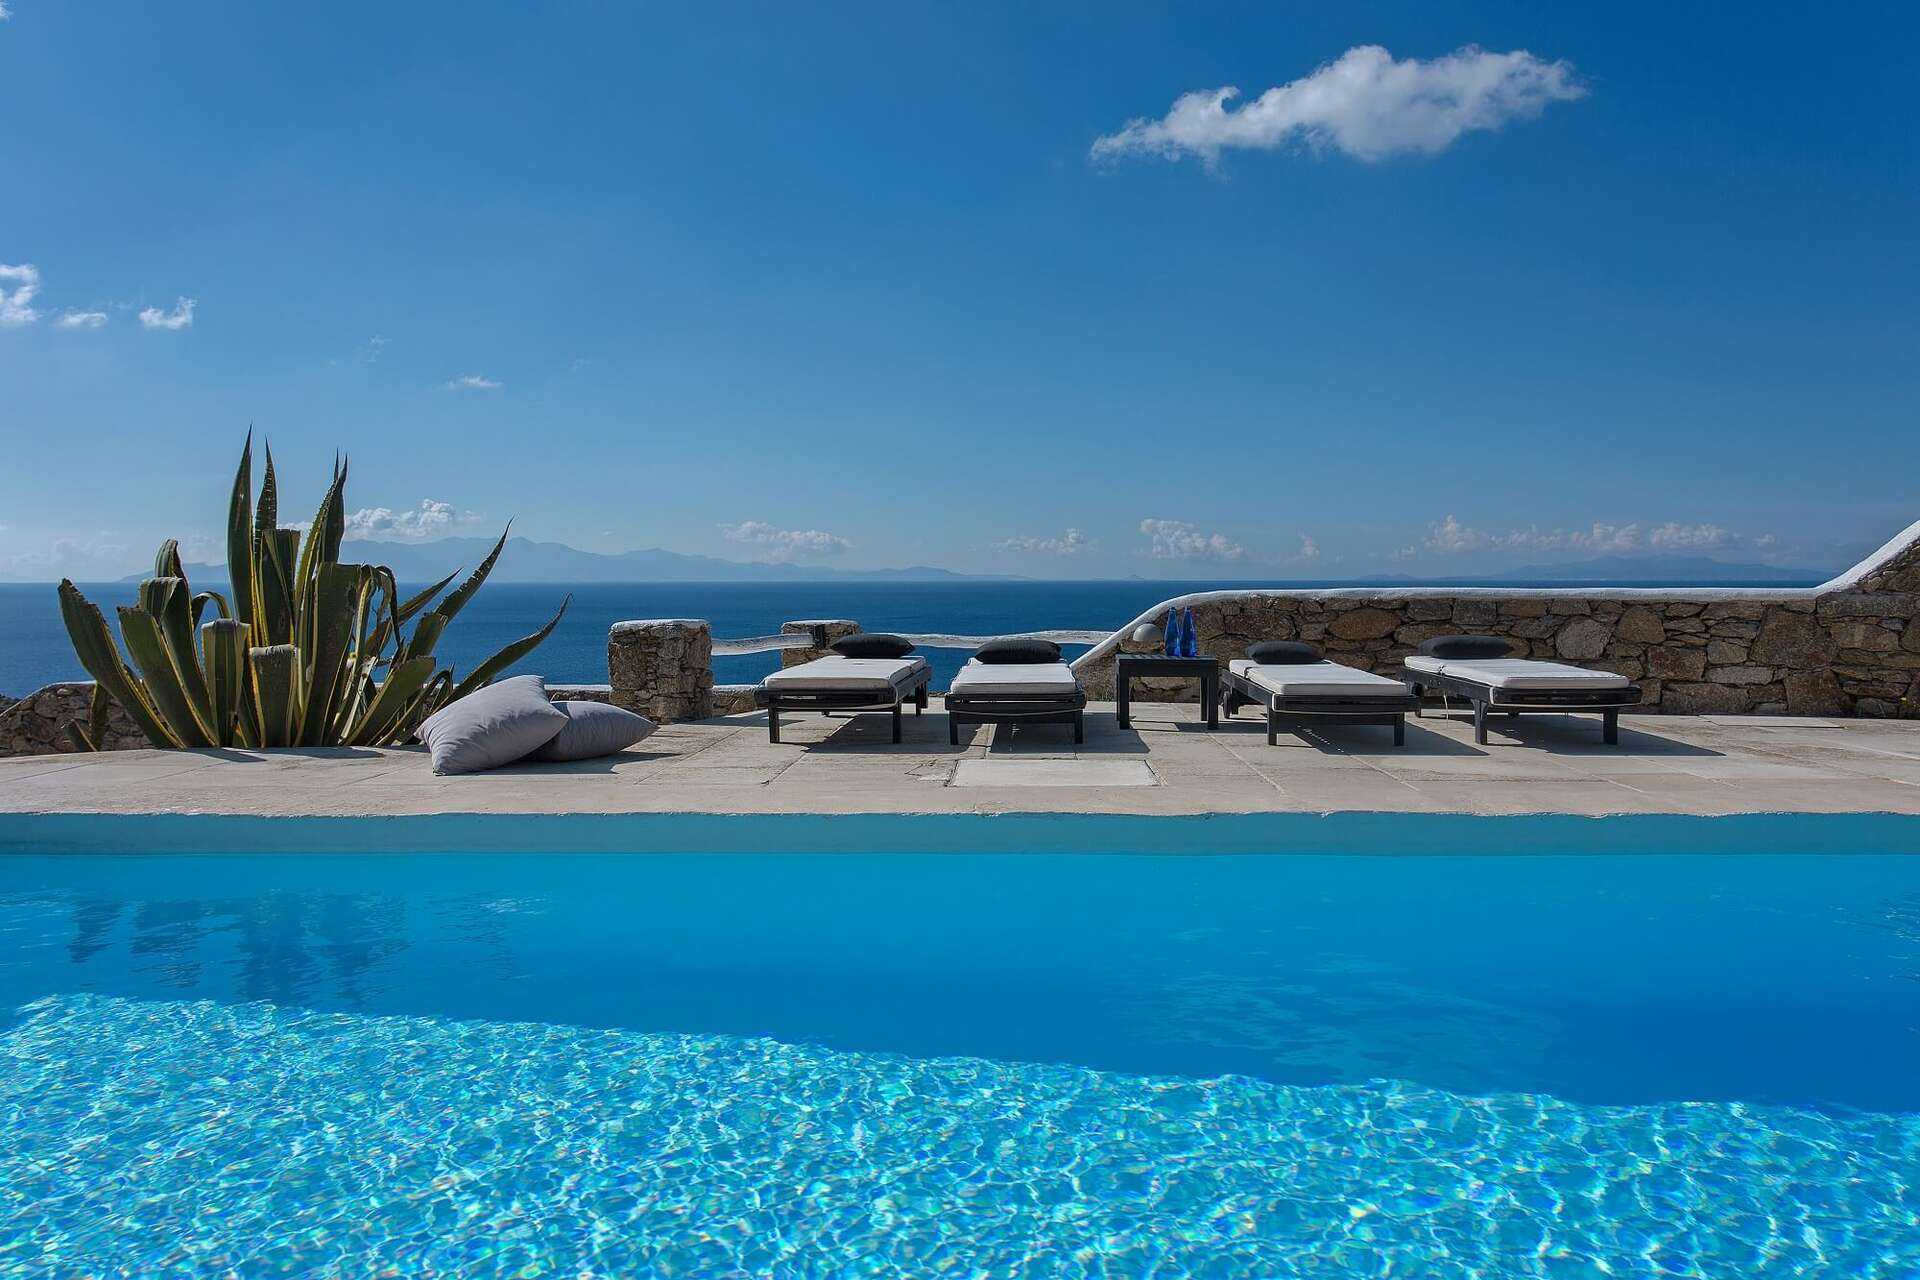 Luxury vacation rentals europe - Greece - Mykonos - Super paradise - Villa Carina - Image 1/25